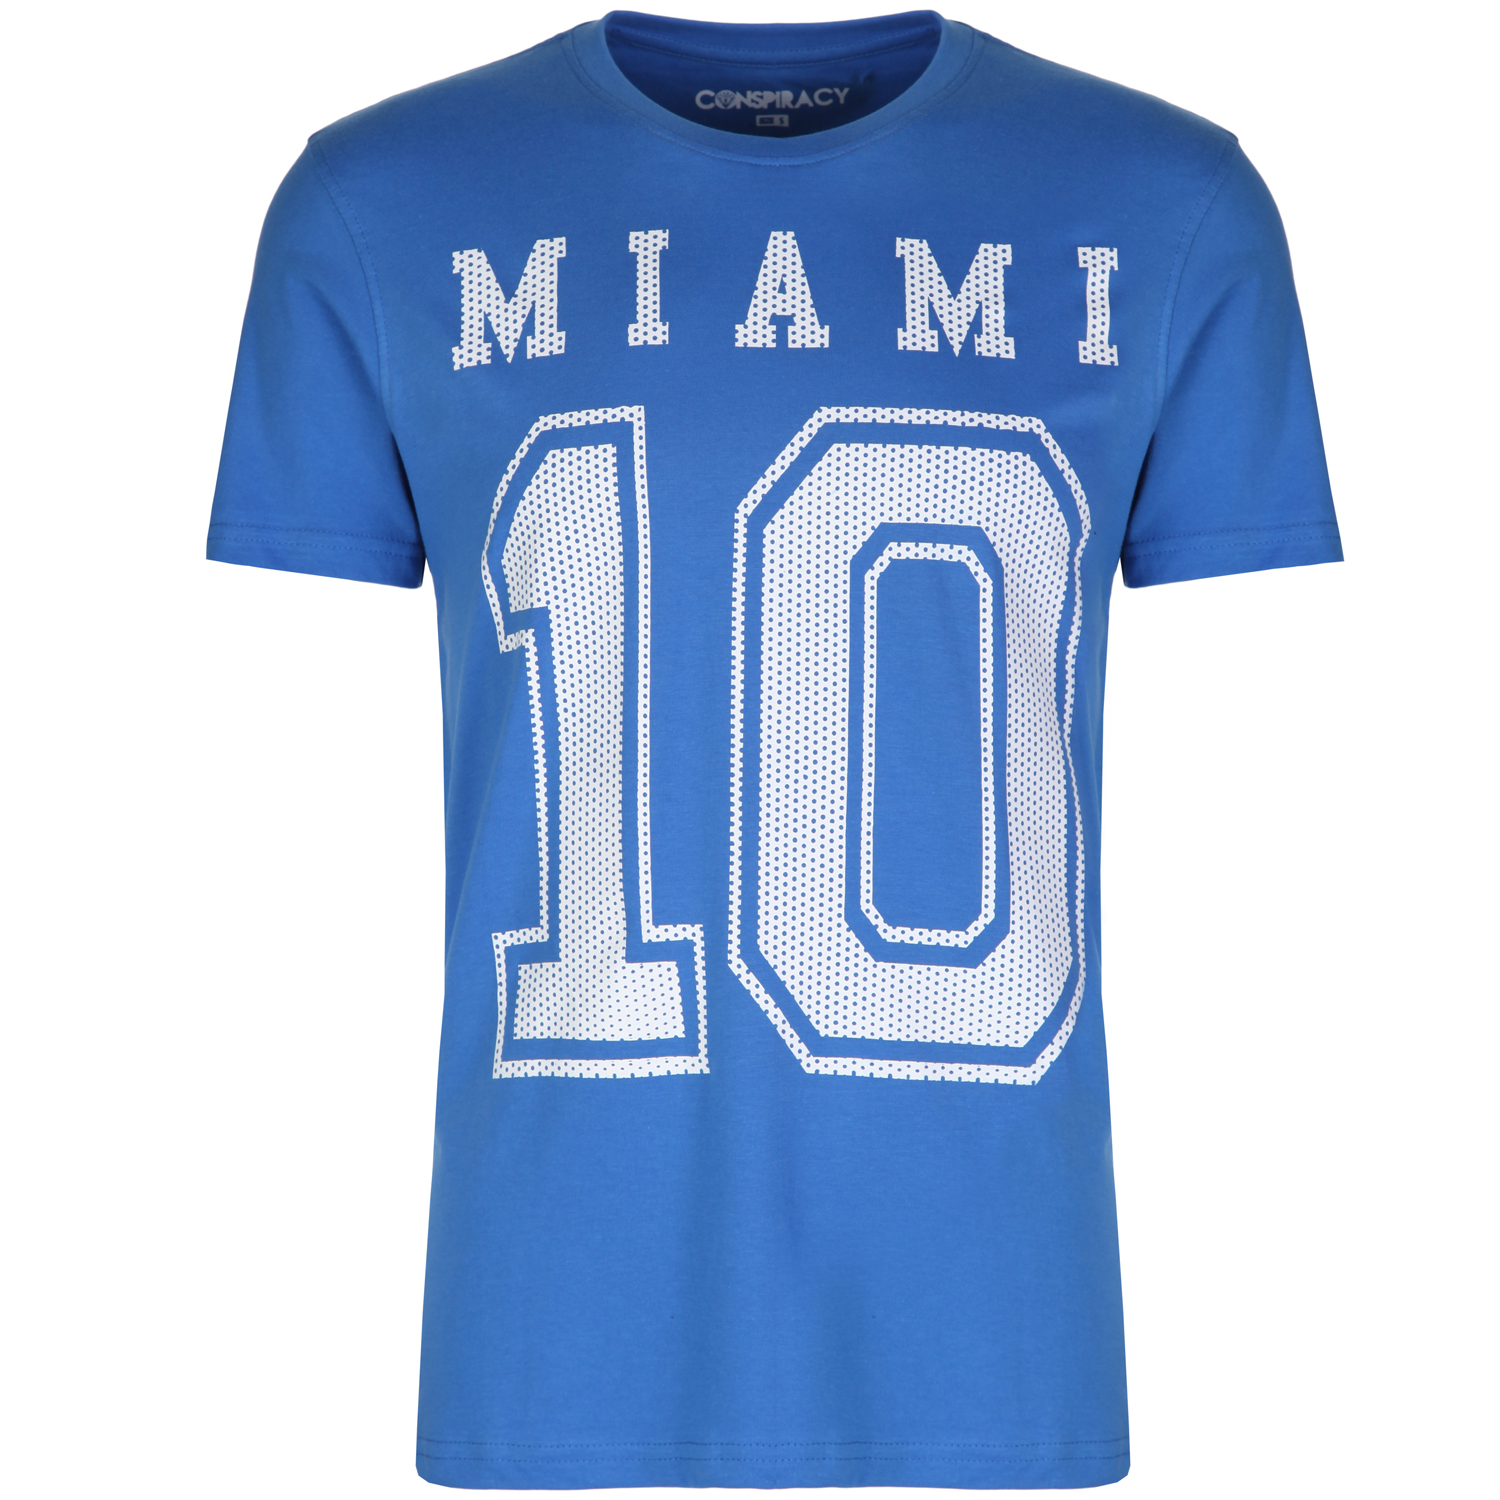 Conspiracy mens miami graphic short sleeve t shirt tee top for Miami t shirt printing